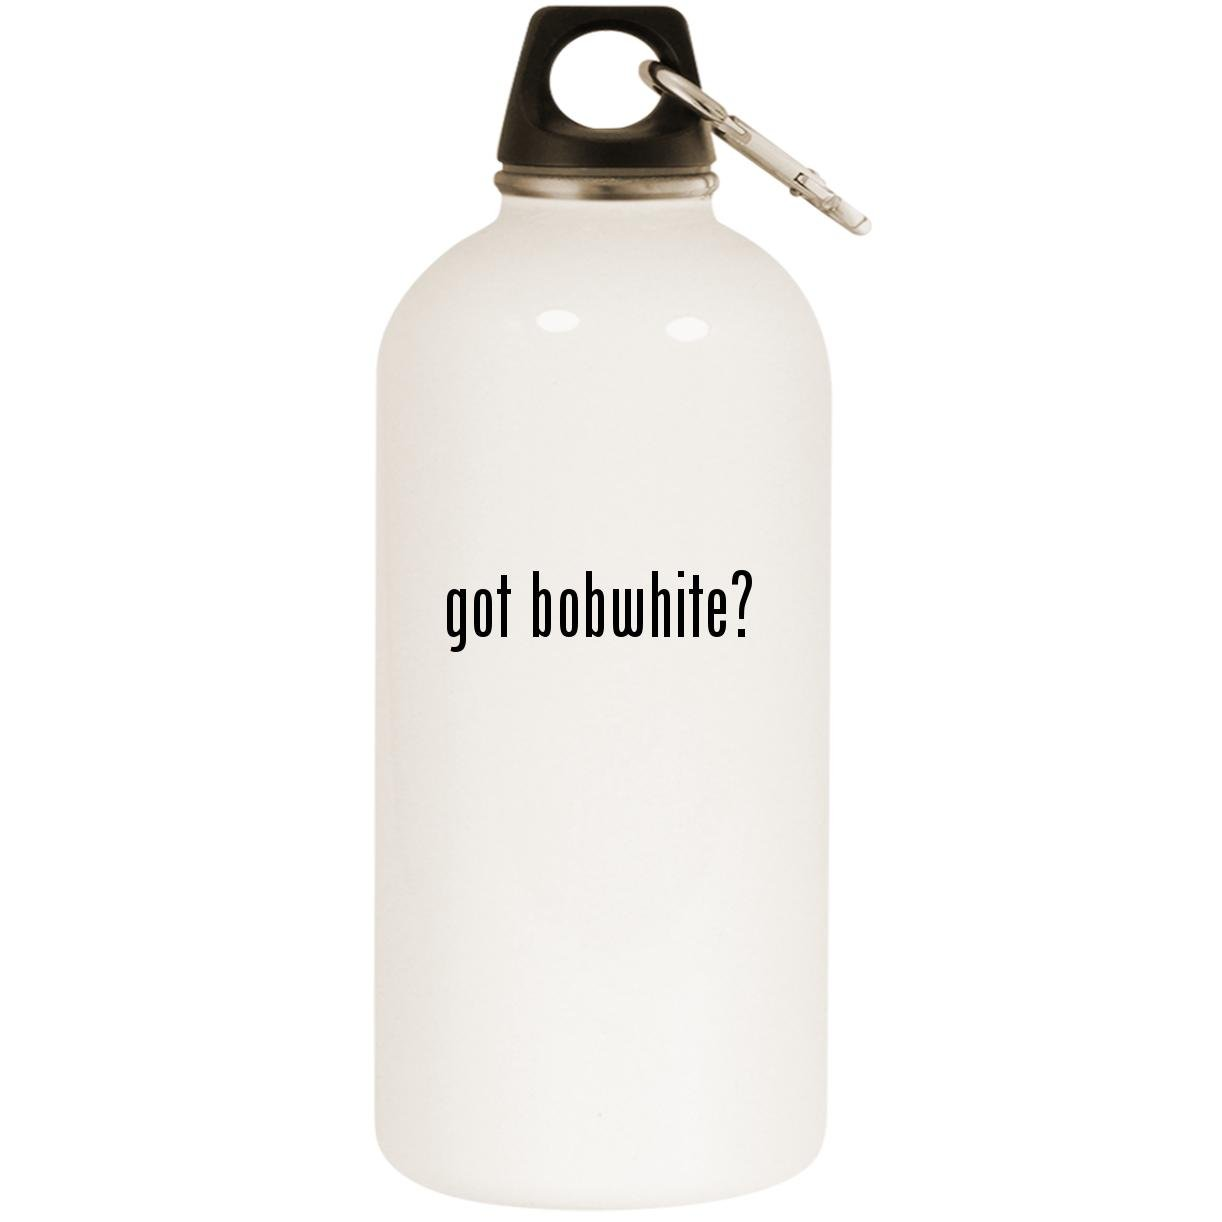 got bobwhite? - White 20oz Stainless Steel Water Bottle with Carabiner